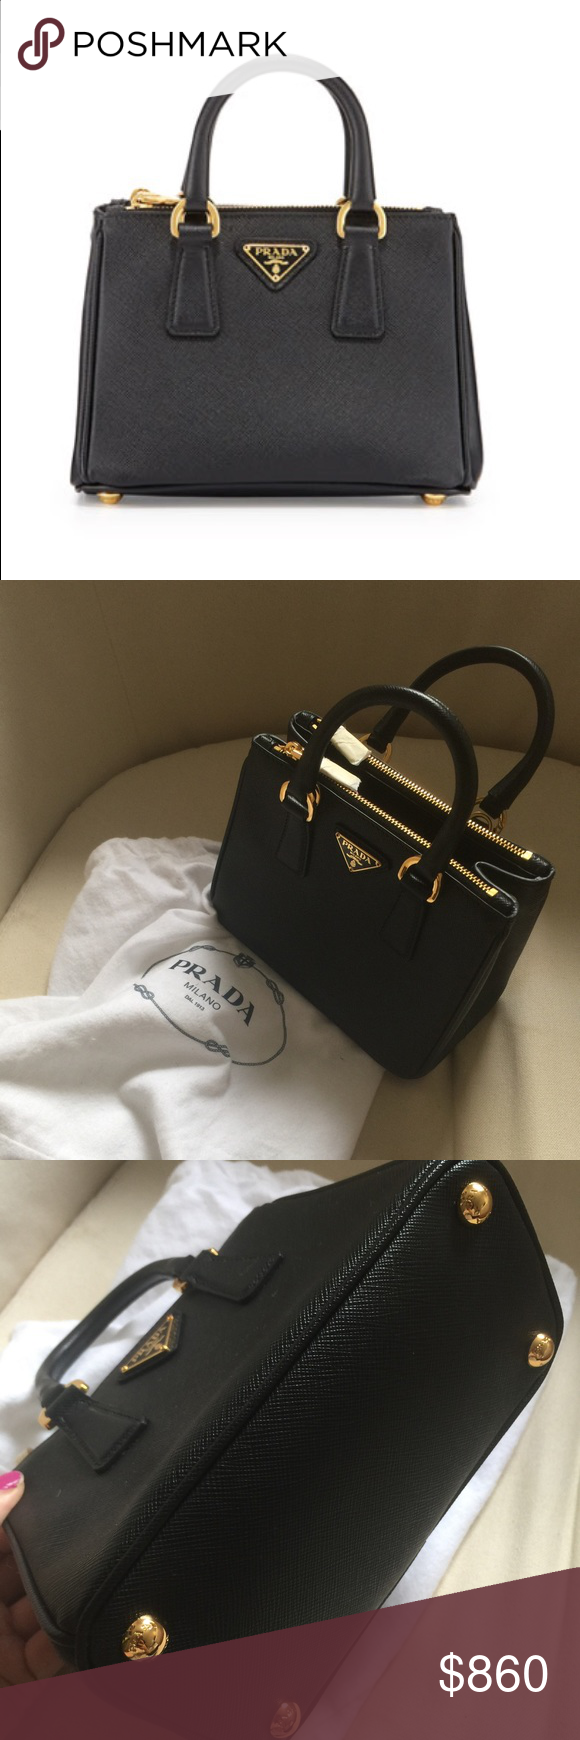 a6c4cedbac46 PRADA Saffiano mini Galleria bag,black It's new and never been used. I lost  the removal strap due to my carelessness, and I don't like to carry it  without ...